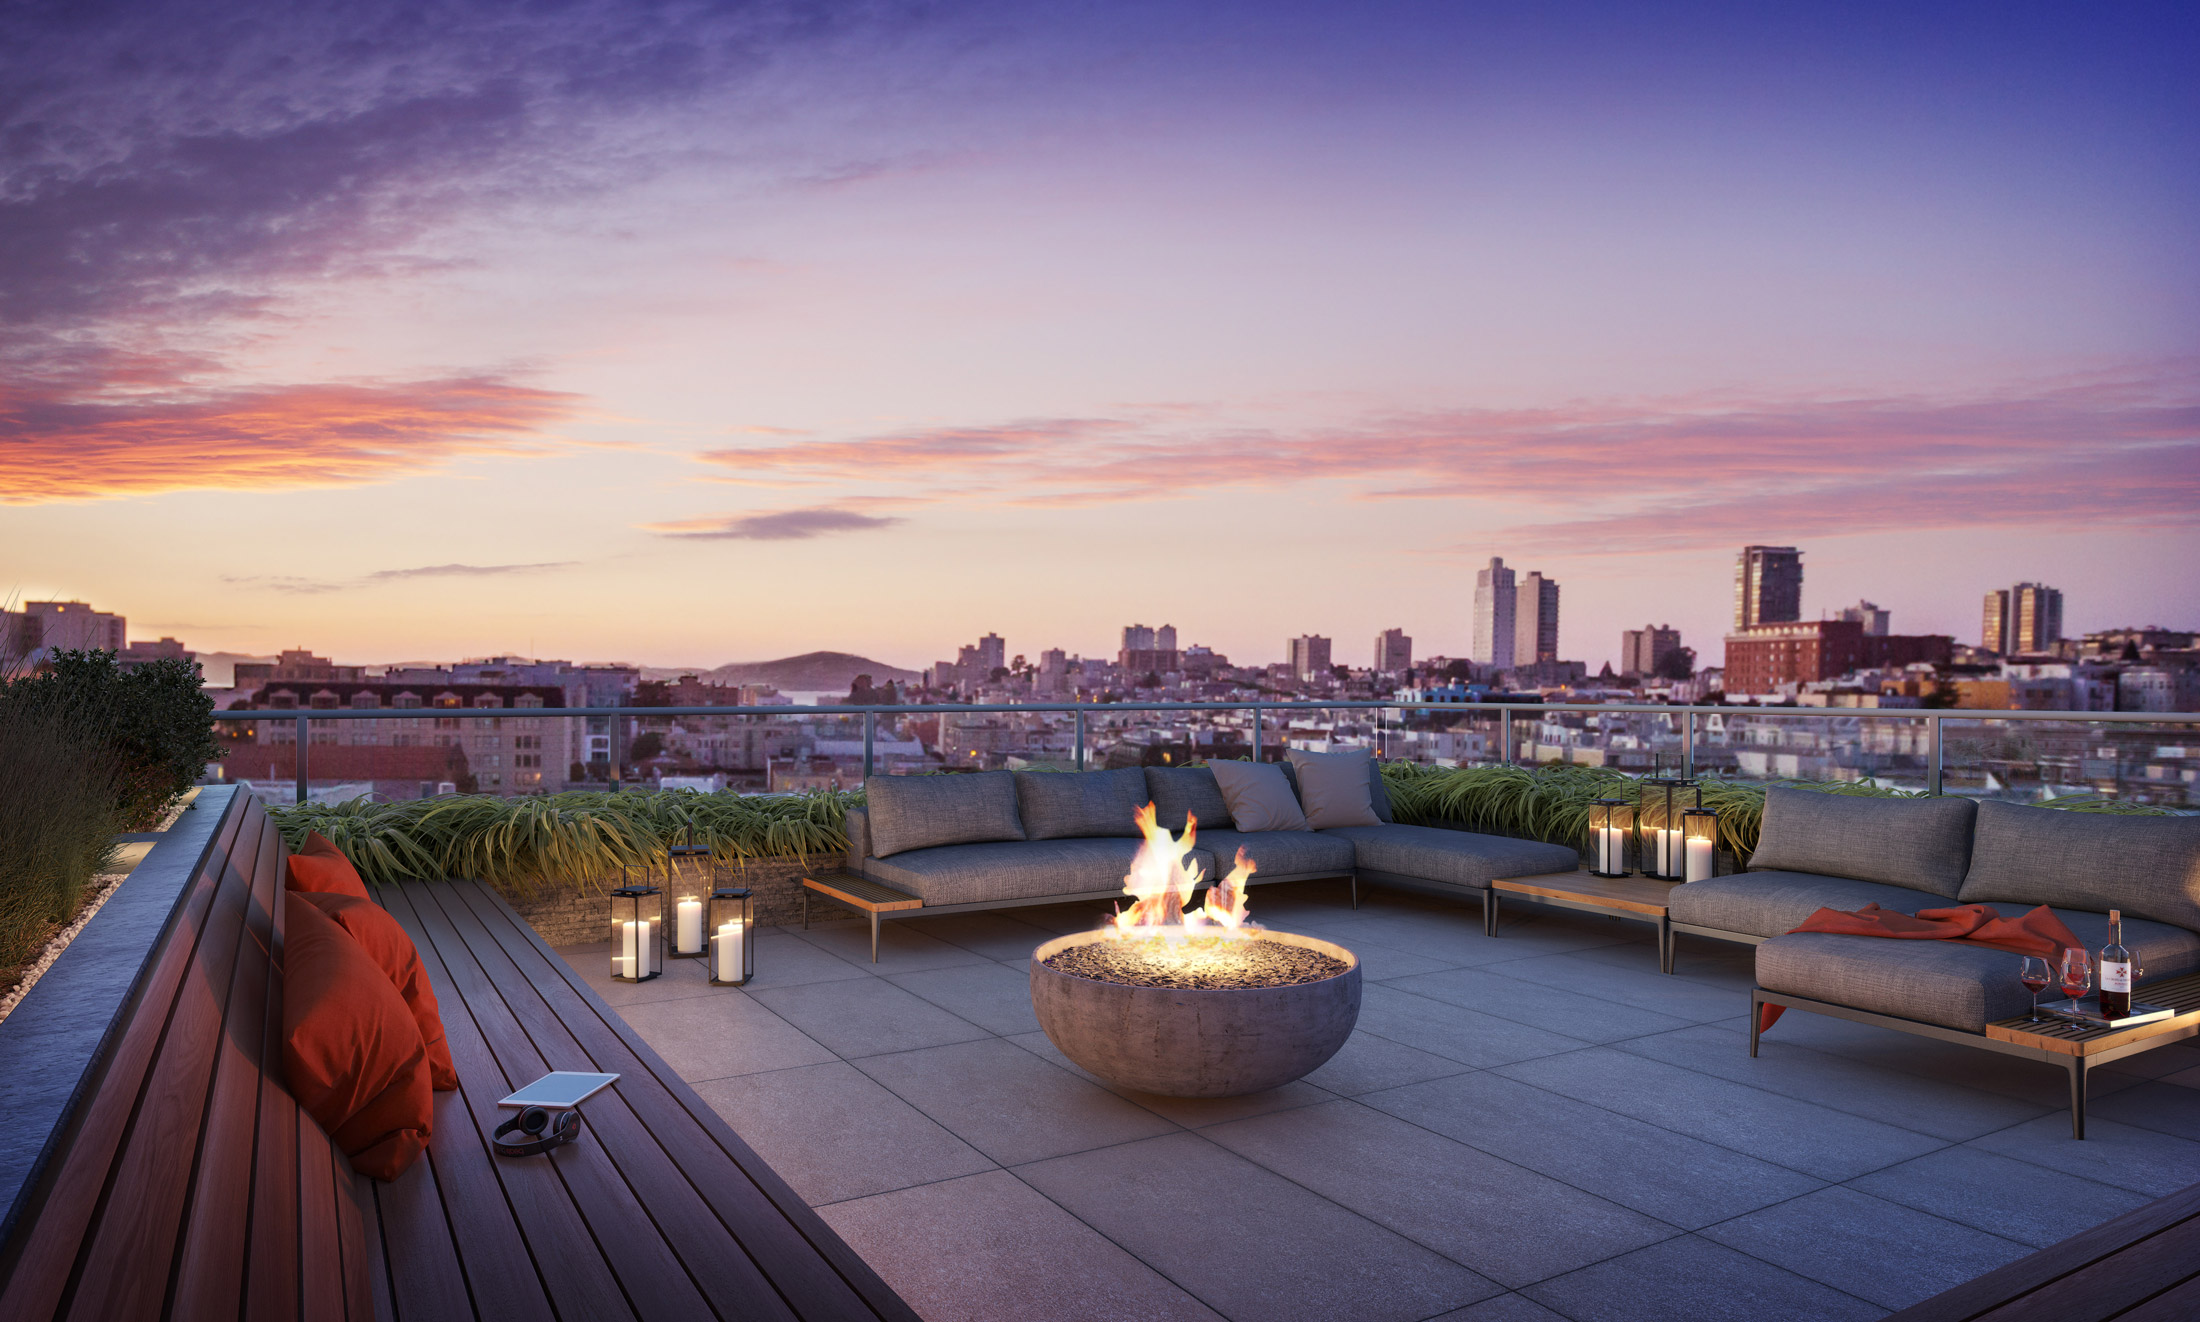 Architectural Rendering of the rooftop of the The Austin project located in San Francisco, California